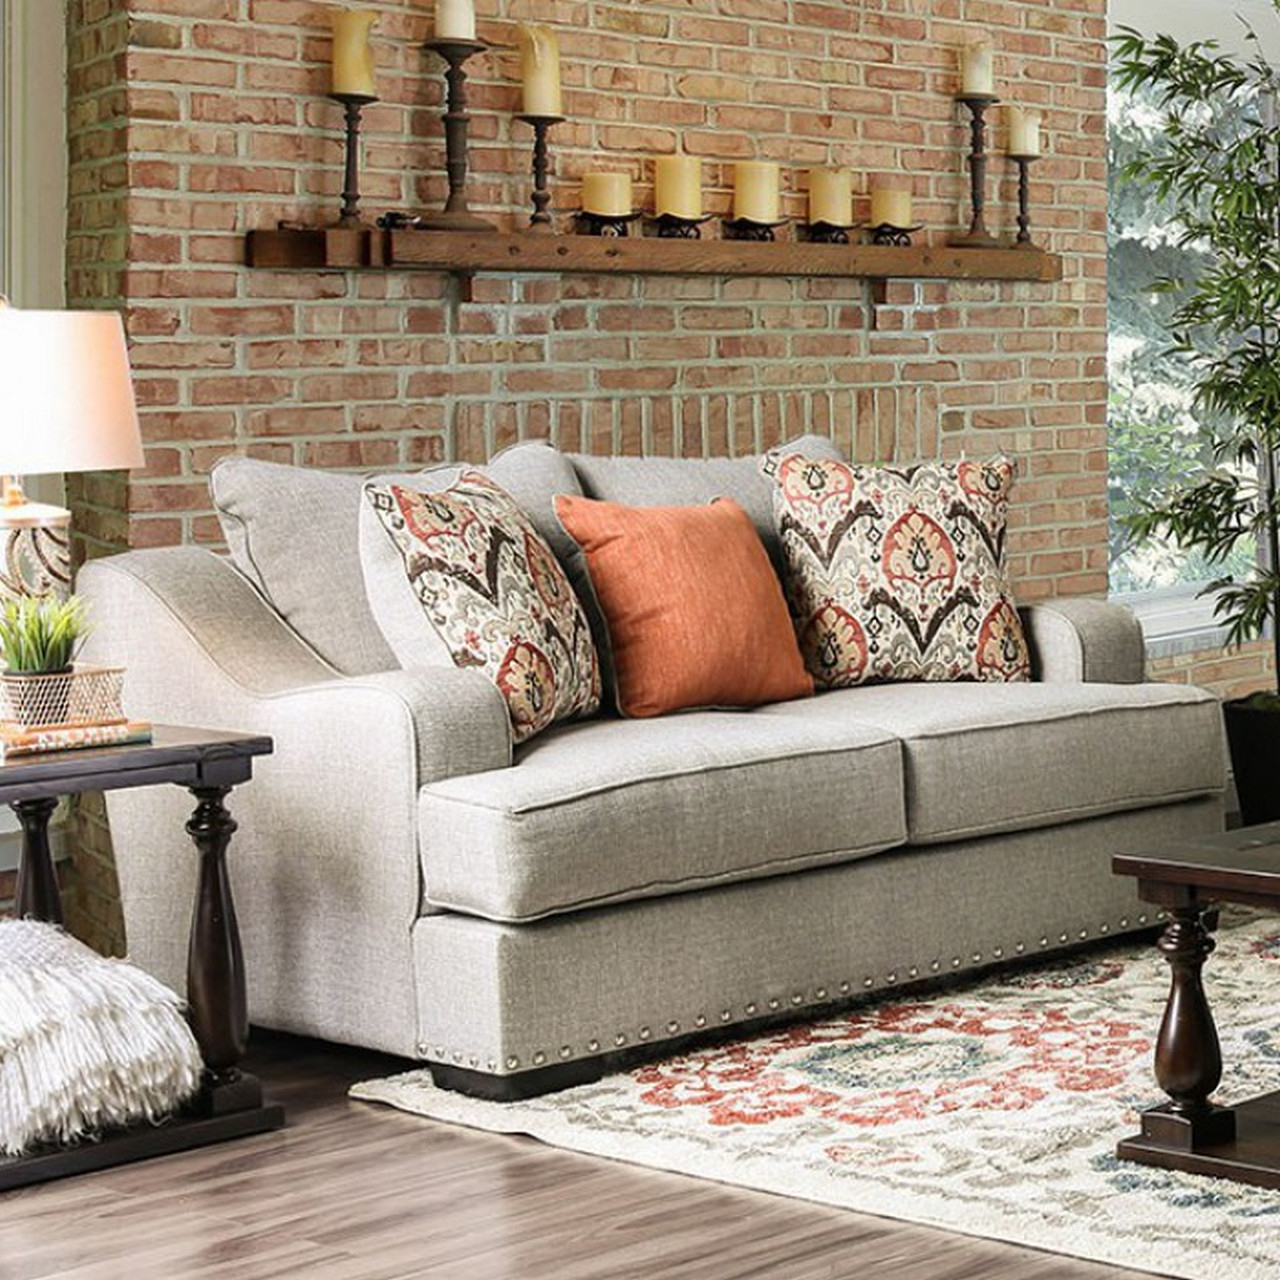 Most Recent Savannah Transitional Sloped Arms Light Grey Sofa Set With Regarding 2pc Polyfiber Sectional Sofas With Nailhead Trims Gray (View 12 of 20)